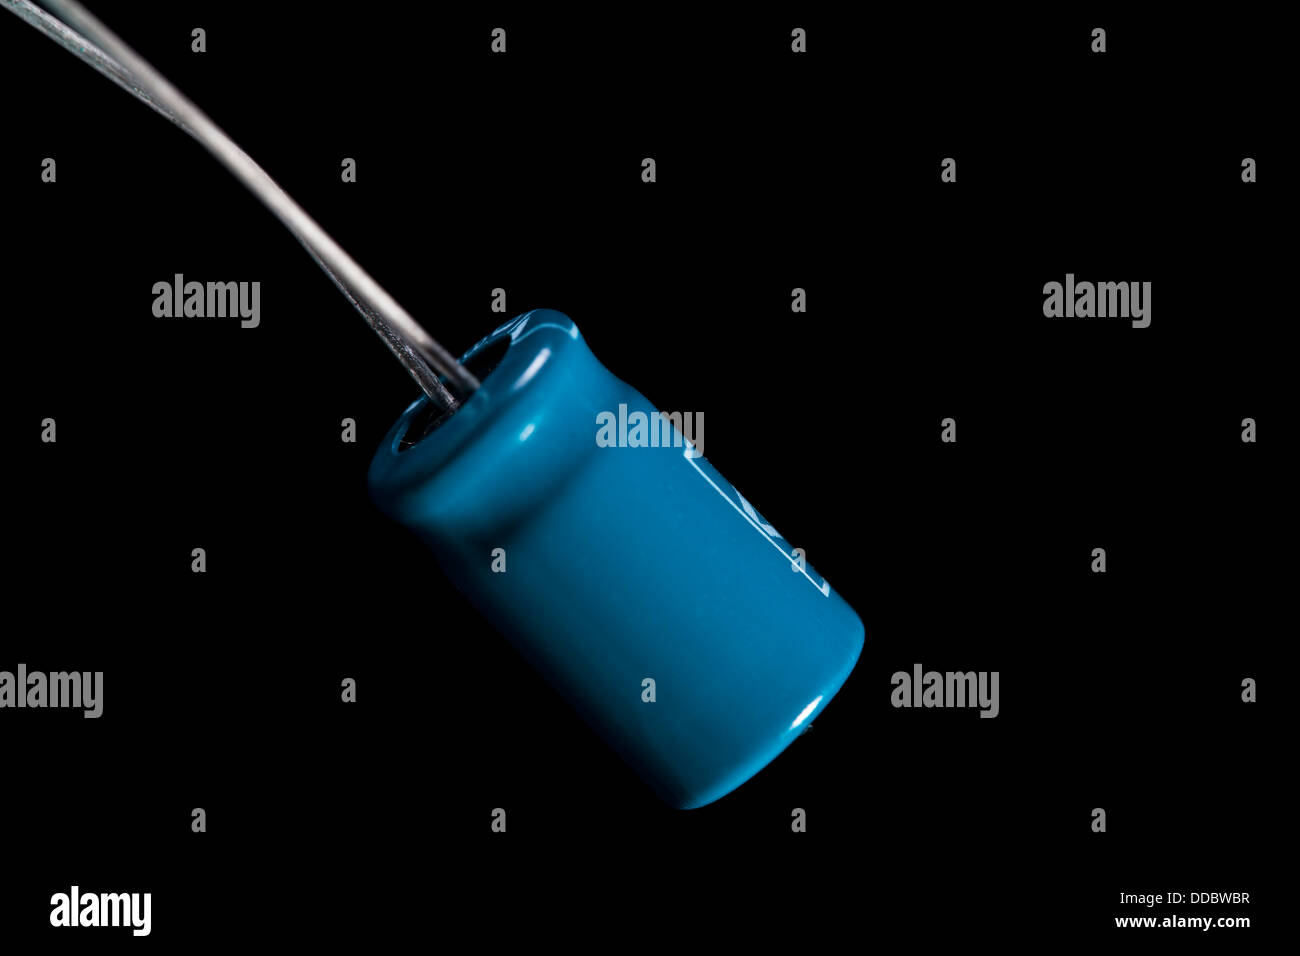 Photo of a resistor against a black background - Stock Image